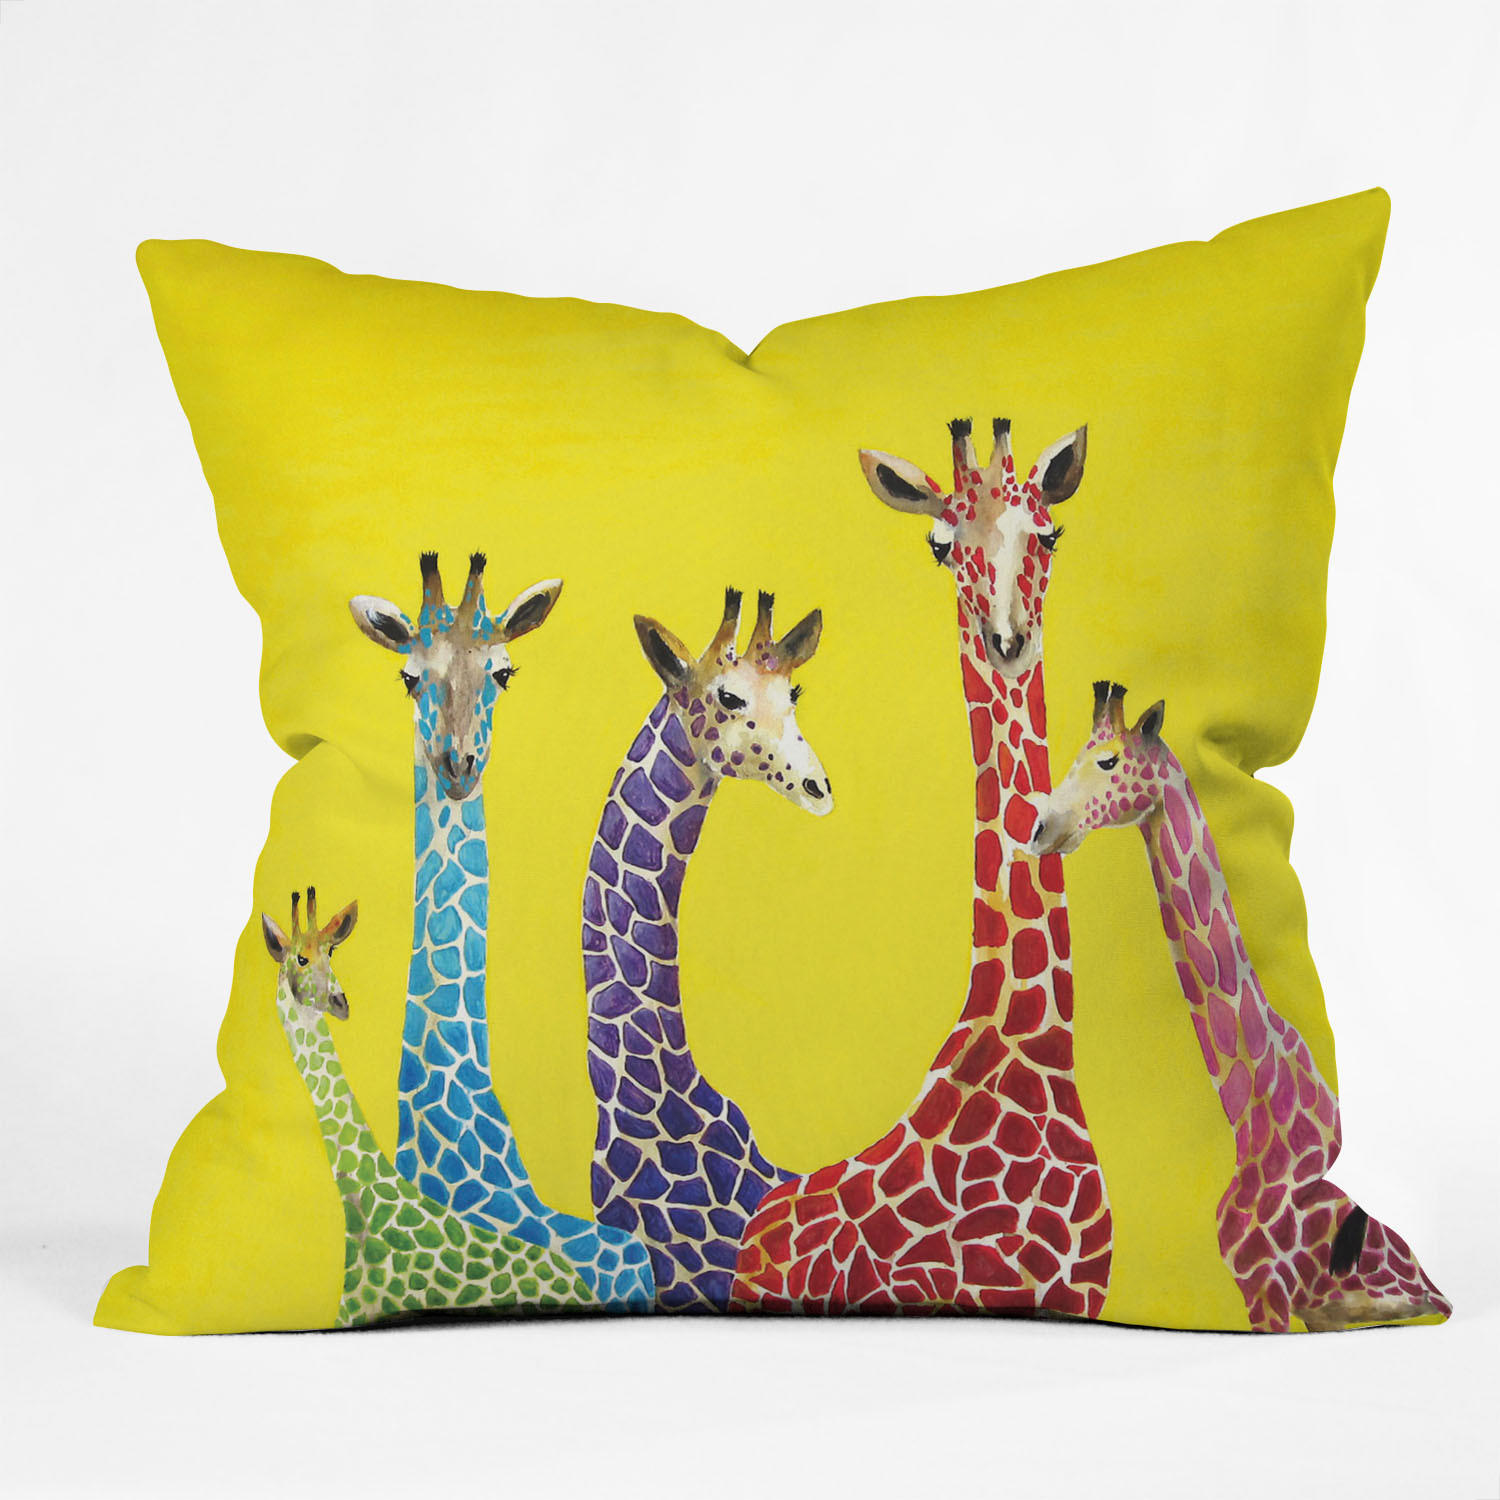 Clara Nilles Jellybean Giraffes Throw Pillow